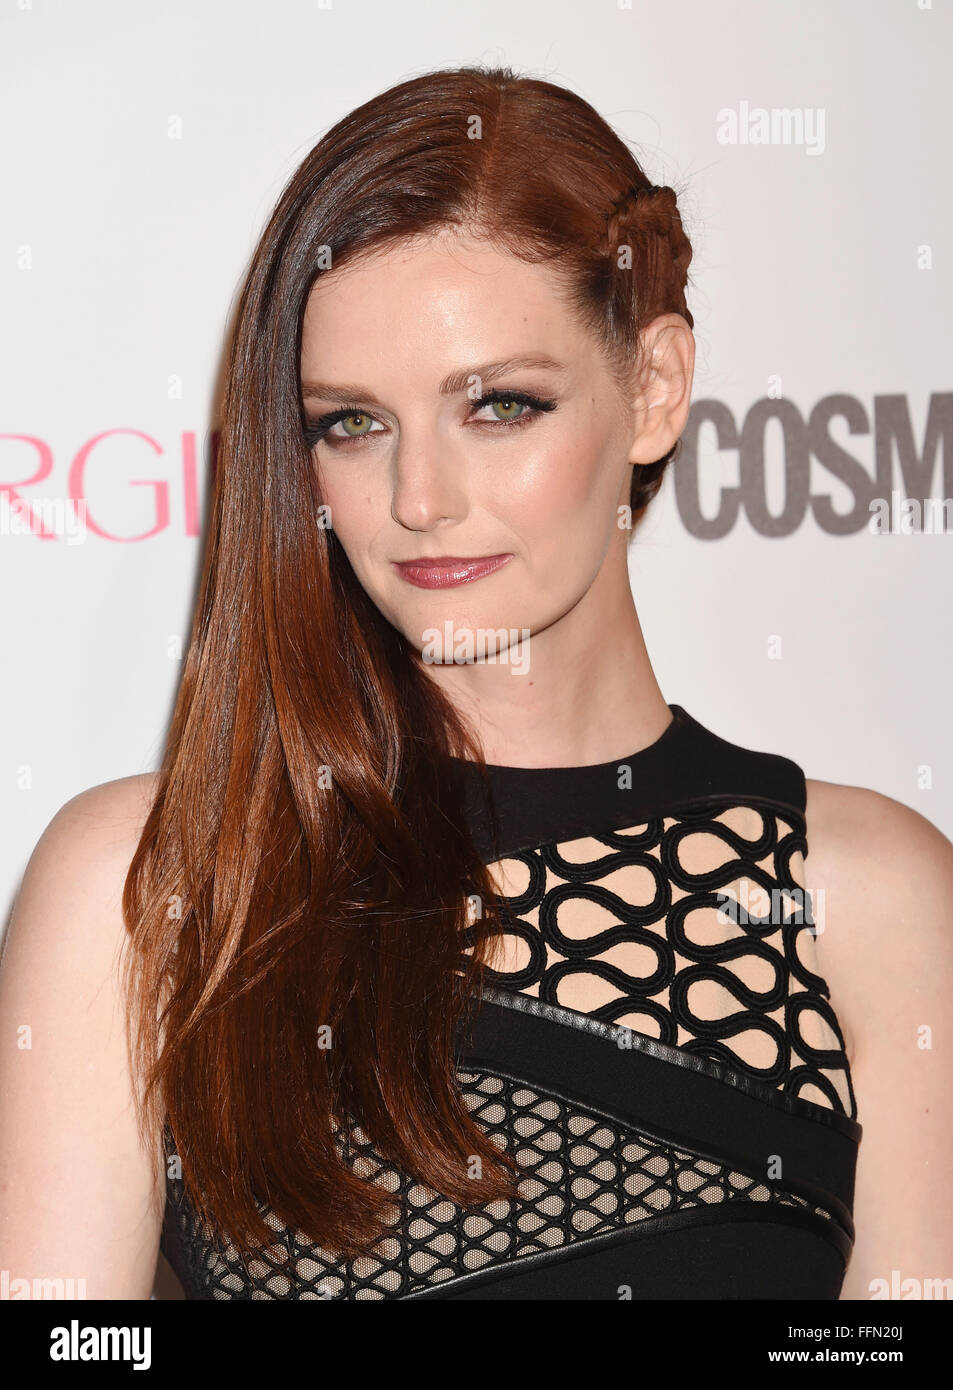 Actress/model Lydia Hearst arrives at Cosmopolitan Magazine's 50th Birthday Celebration at Ysabel on October - Stock Image